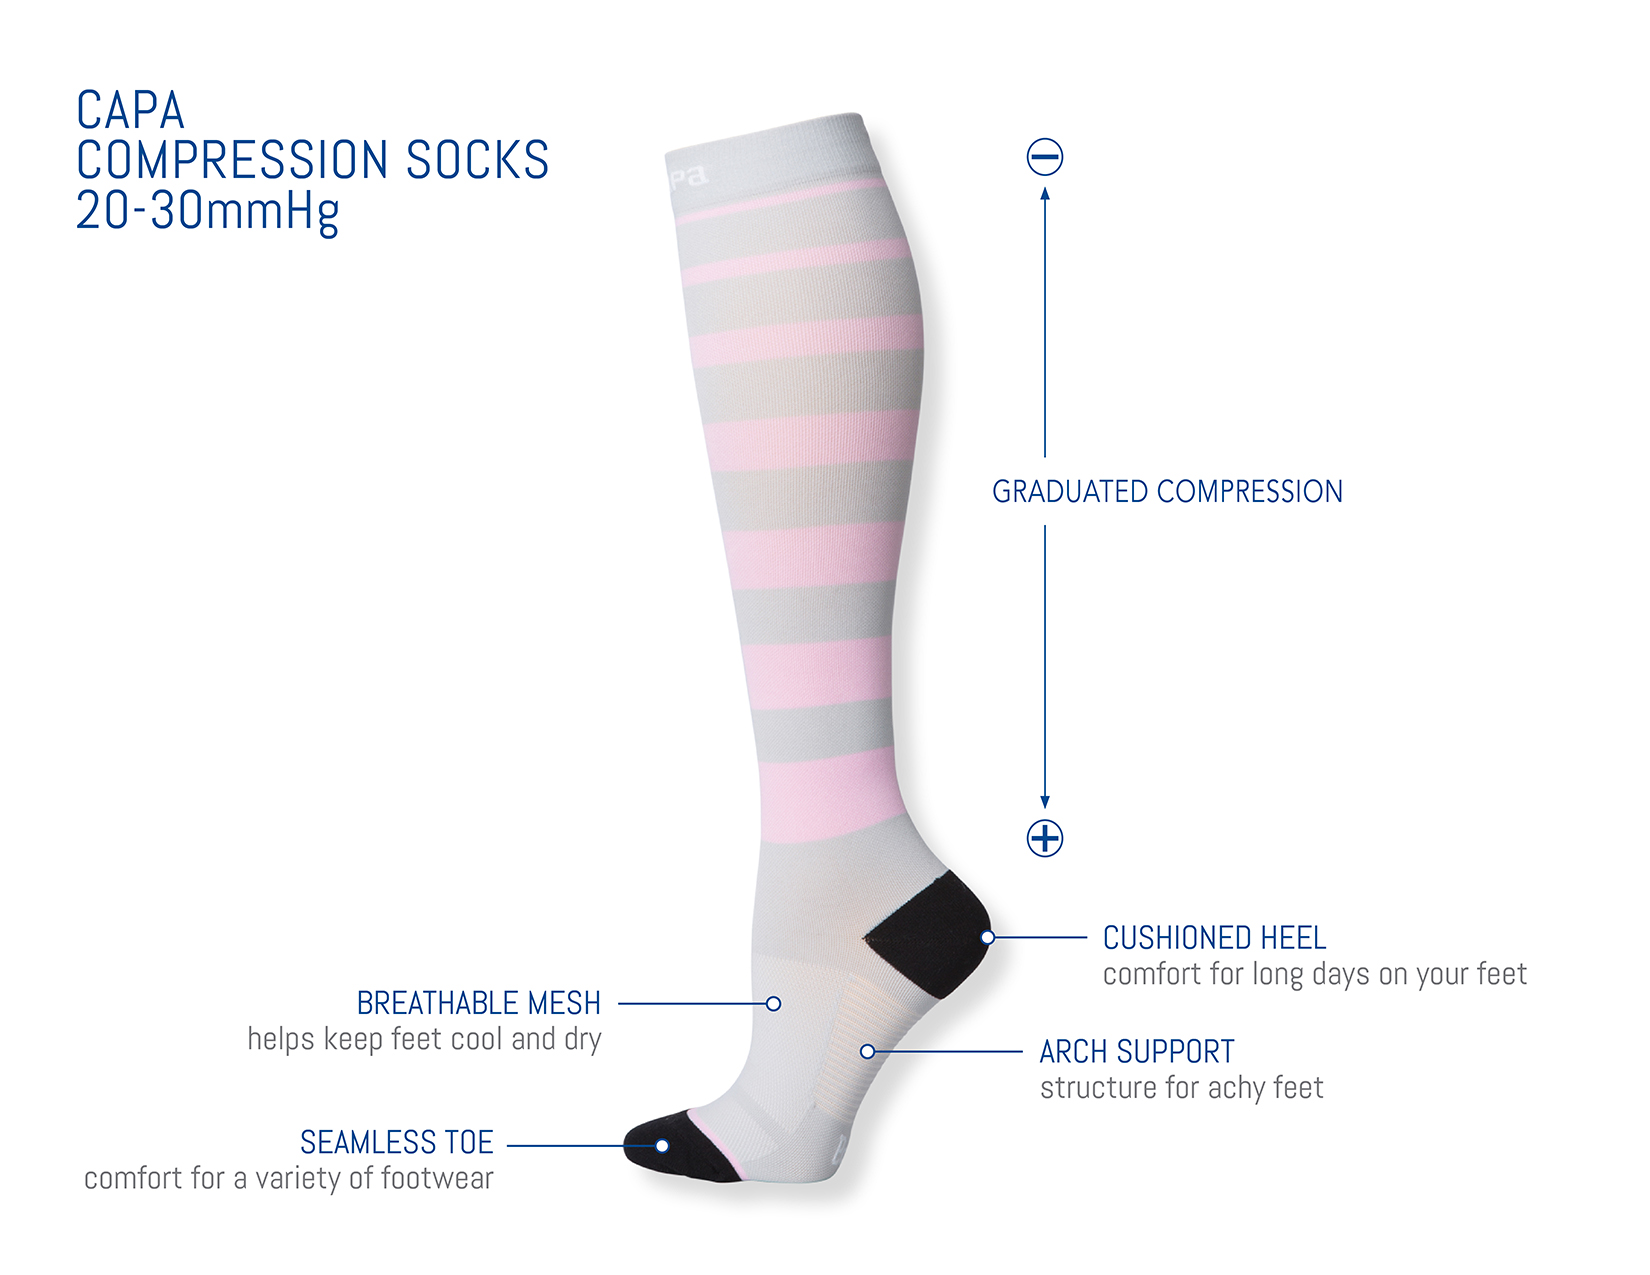 Capa Maternity Compression Socks Features